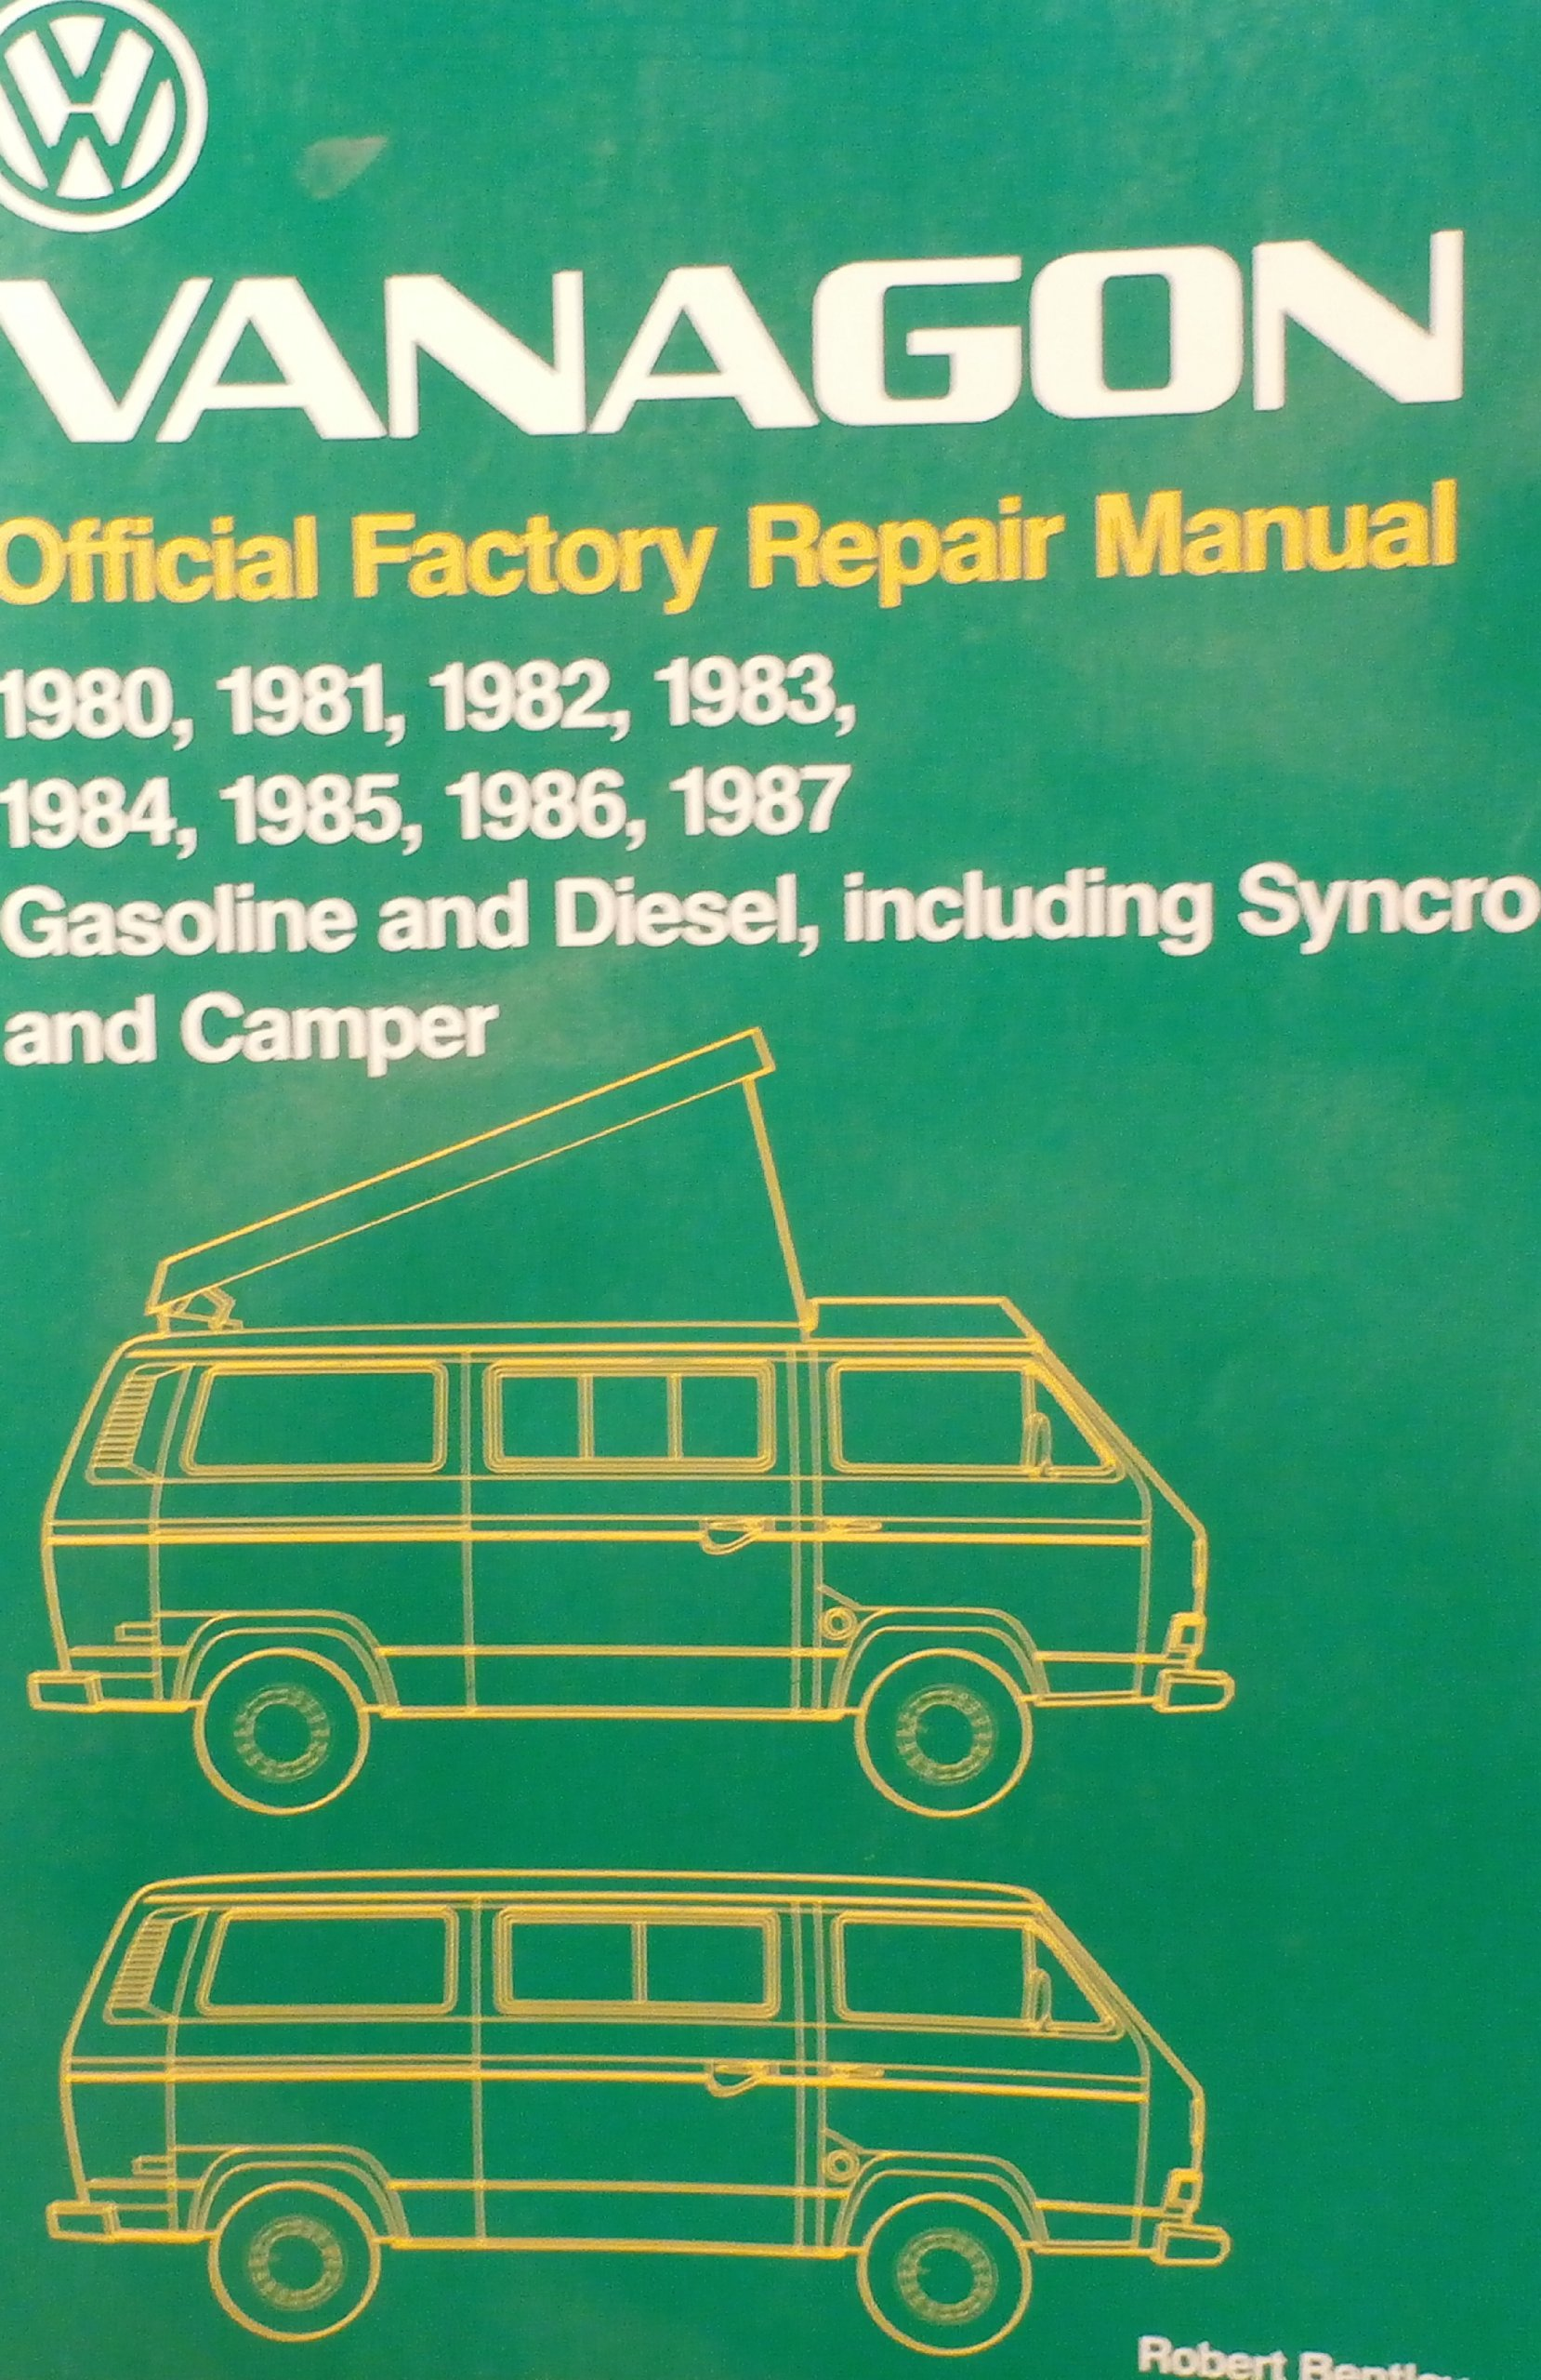 Volkswagen Vanagon official factory repair manual 1980, 1981, 1982, 1983,  1984, 1985, 1986, 1987 gasoline and diesel, including syncro and camper: ...